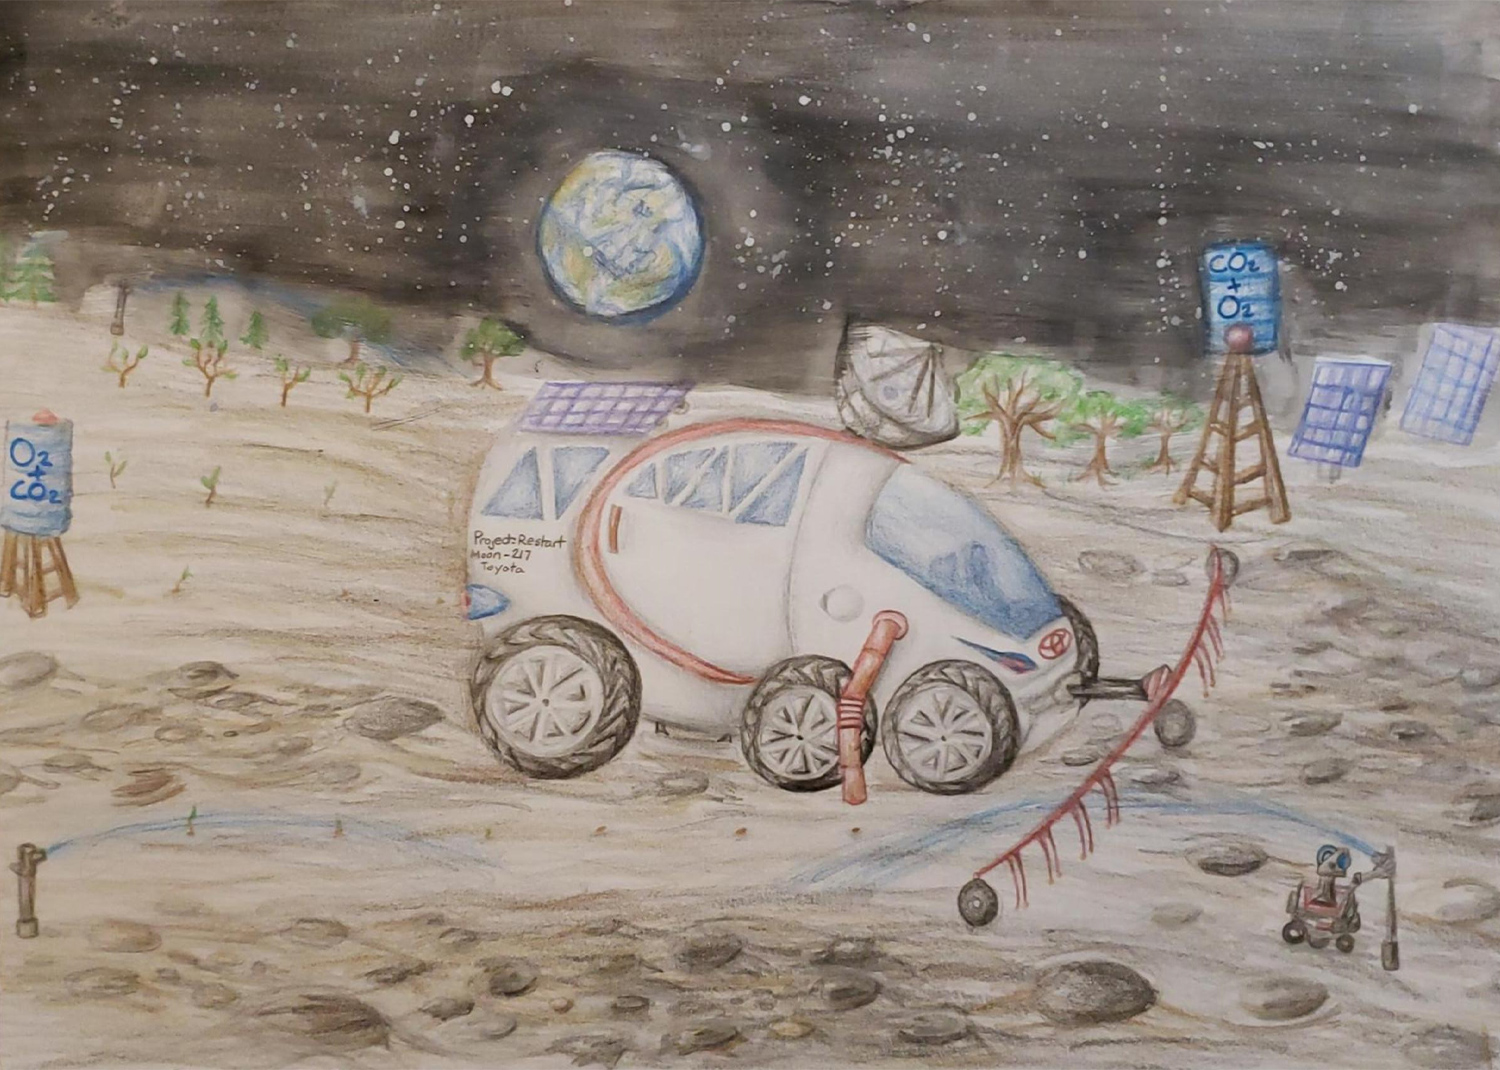 Moon Planter, Jaelie Young, 13 ans